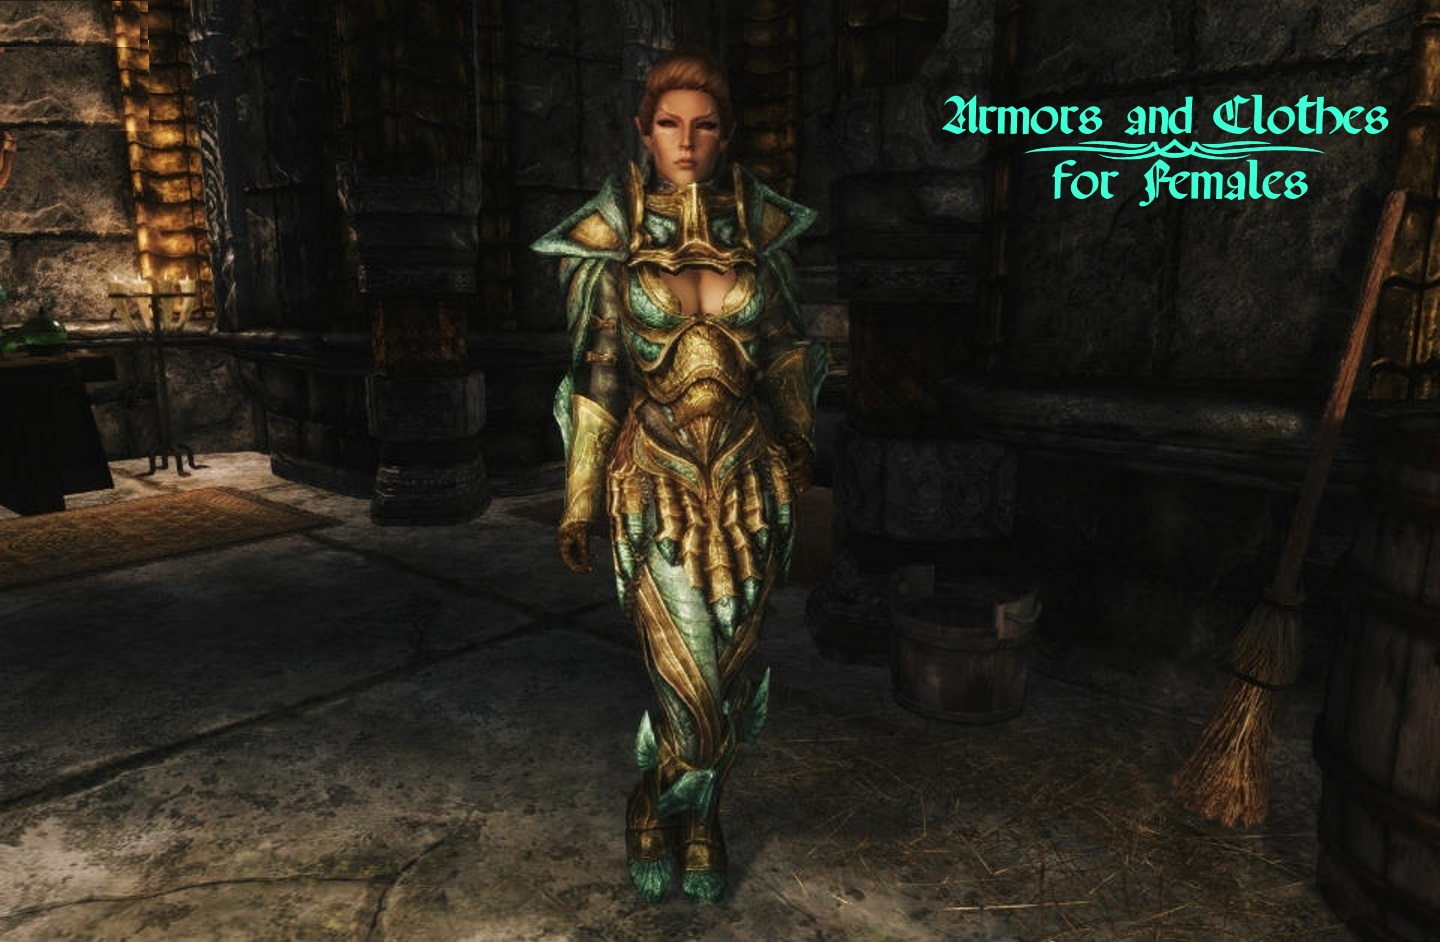 Armors_and_Clothes_for_Females.jpg